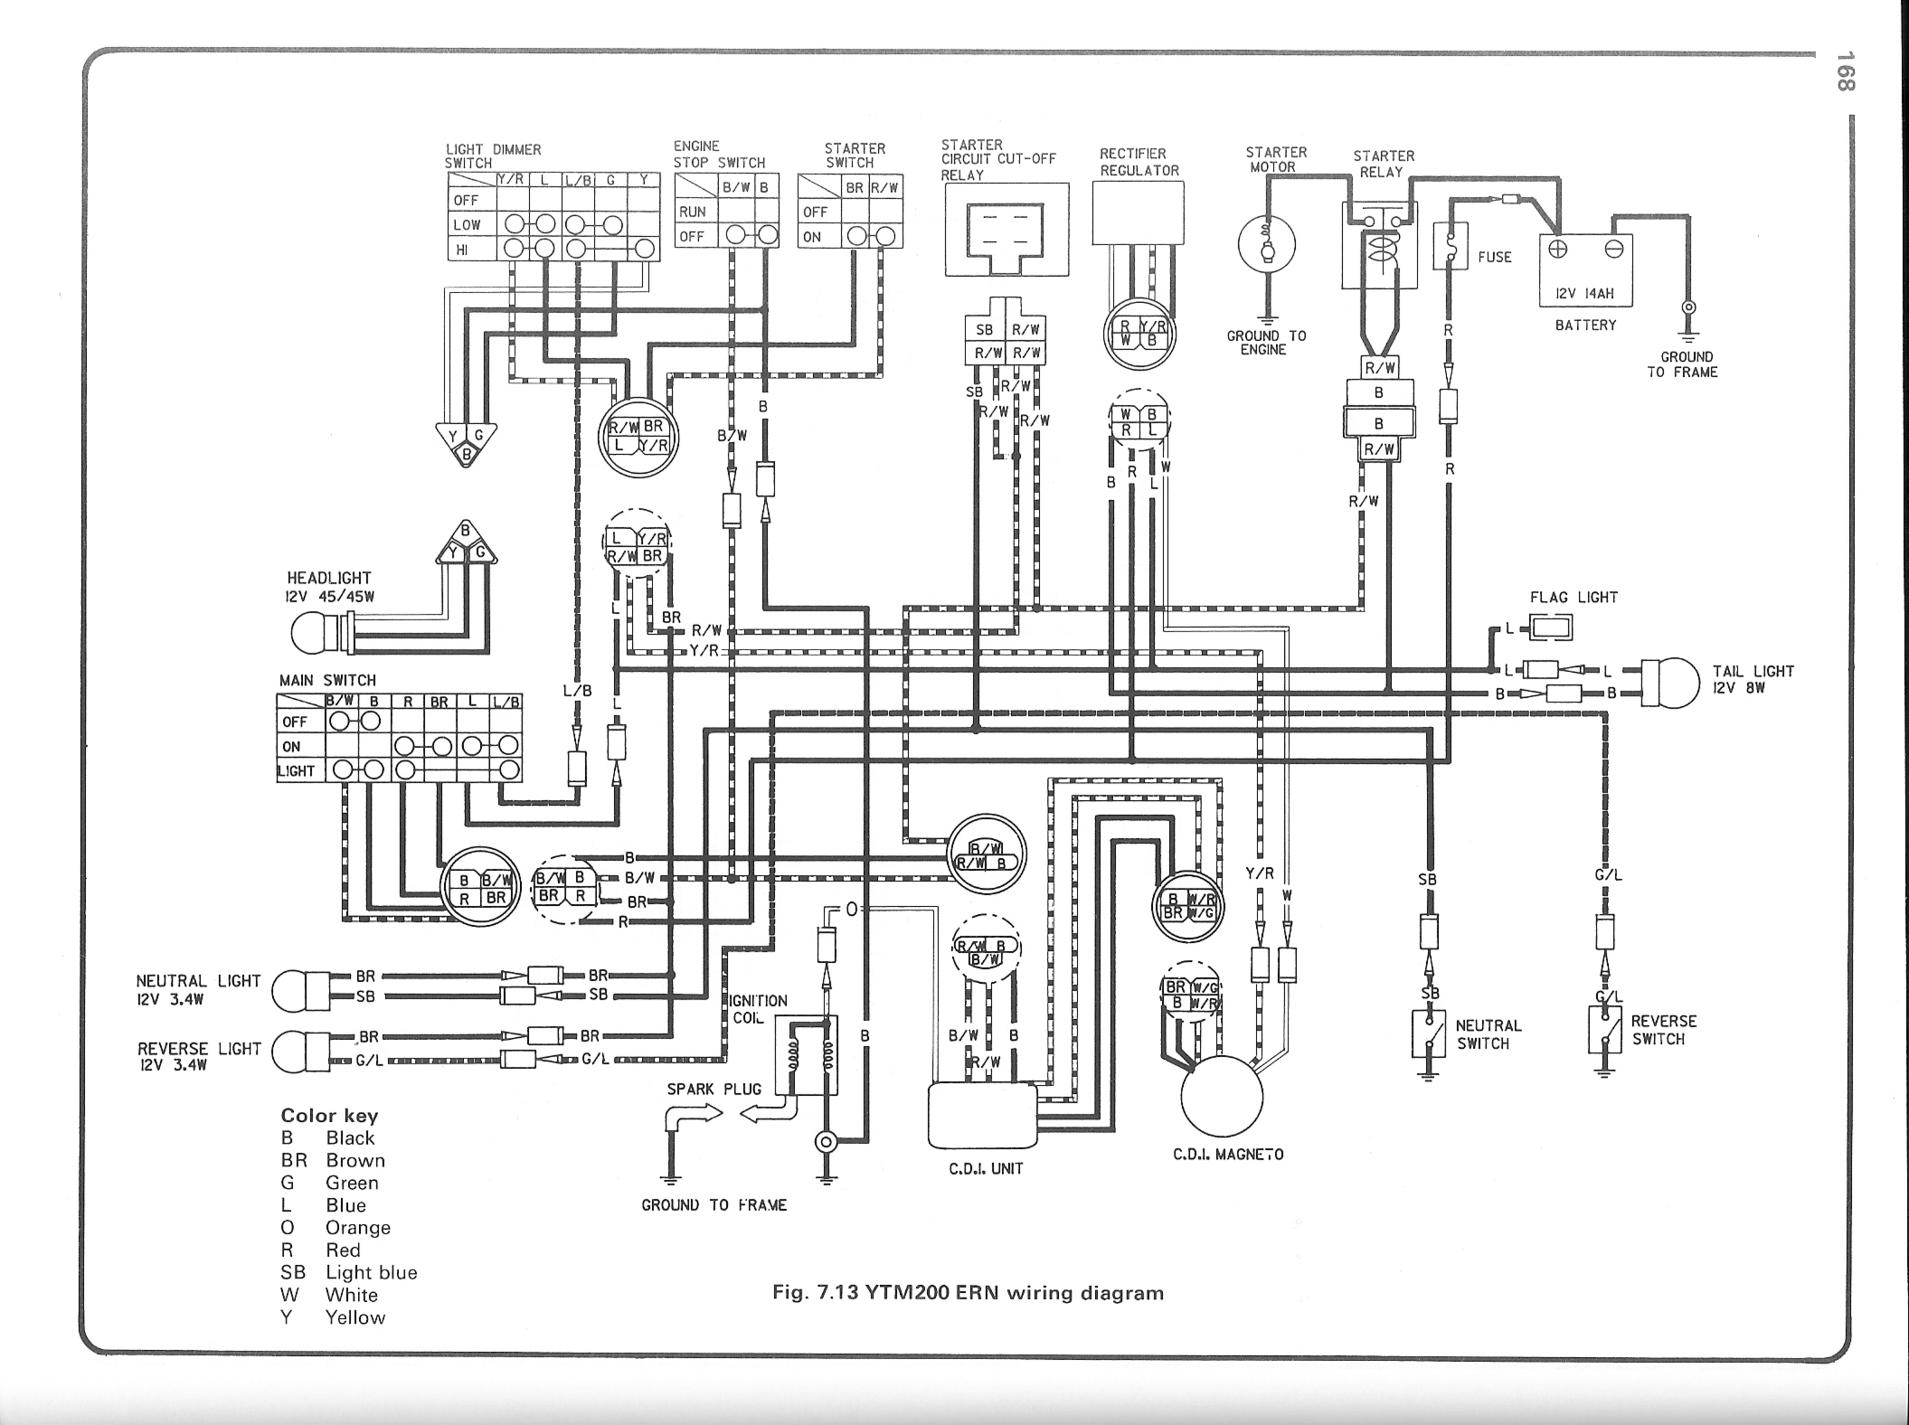 wiring diagram 1989 ezgo golf cart with 188 Yamaha Wiring Diagram Section on Golf Cart Solenoid Wiring Diagram further Ez Go 20484 Charger Schematic Wiring Diagrams as well 6msfw Ezgo T27893 Need Wiring Diagram 1993 Ezgo Stroke together with 1985 Ez Go Wiring Diagram additionally E Z Go Golf Wiring Diagram.